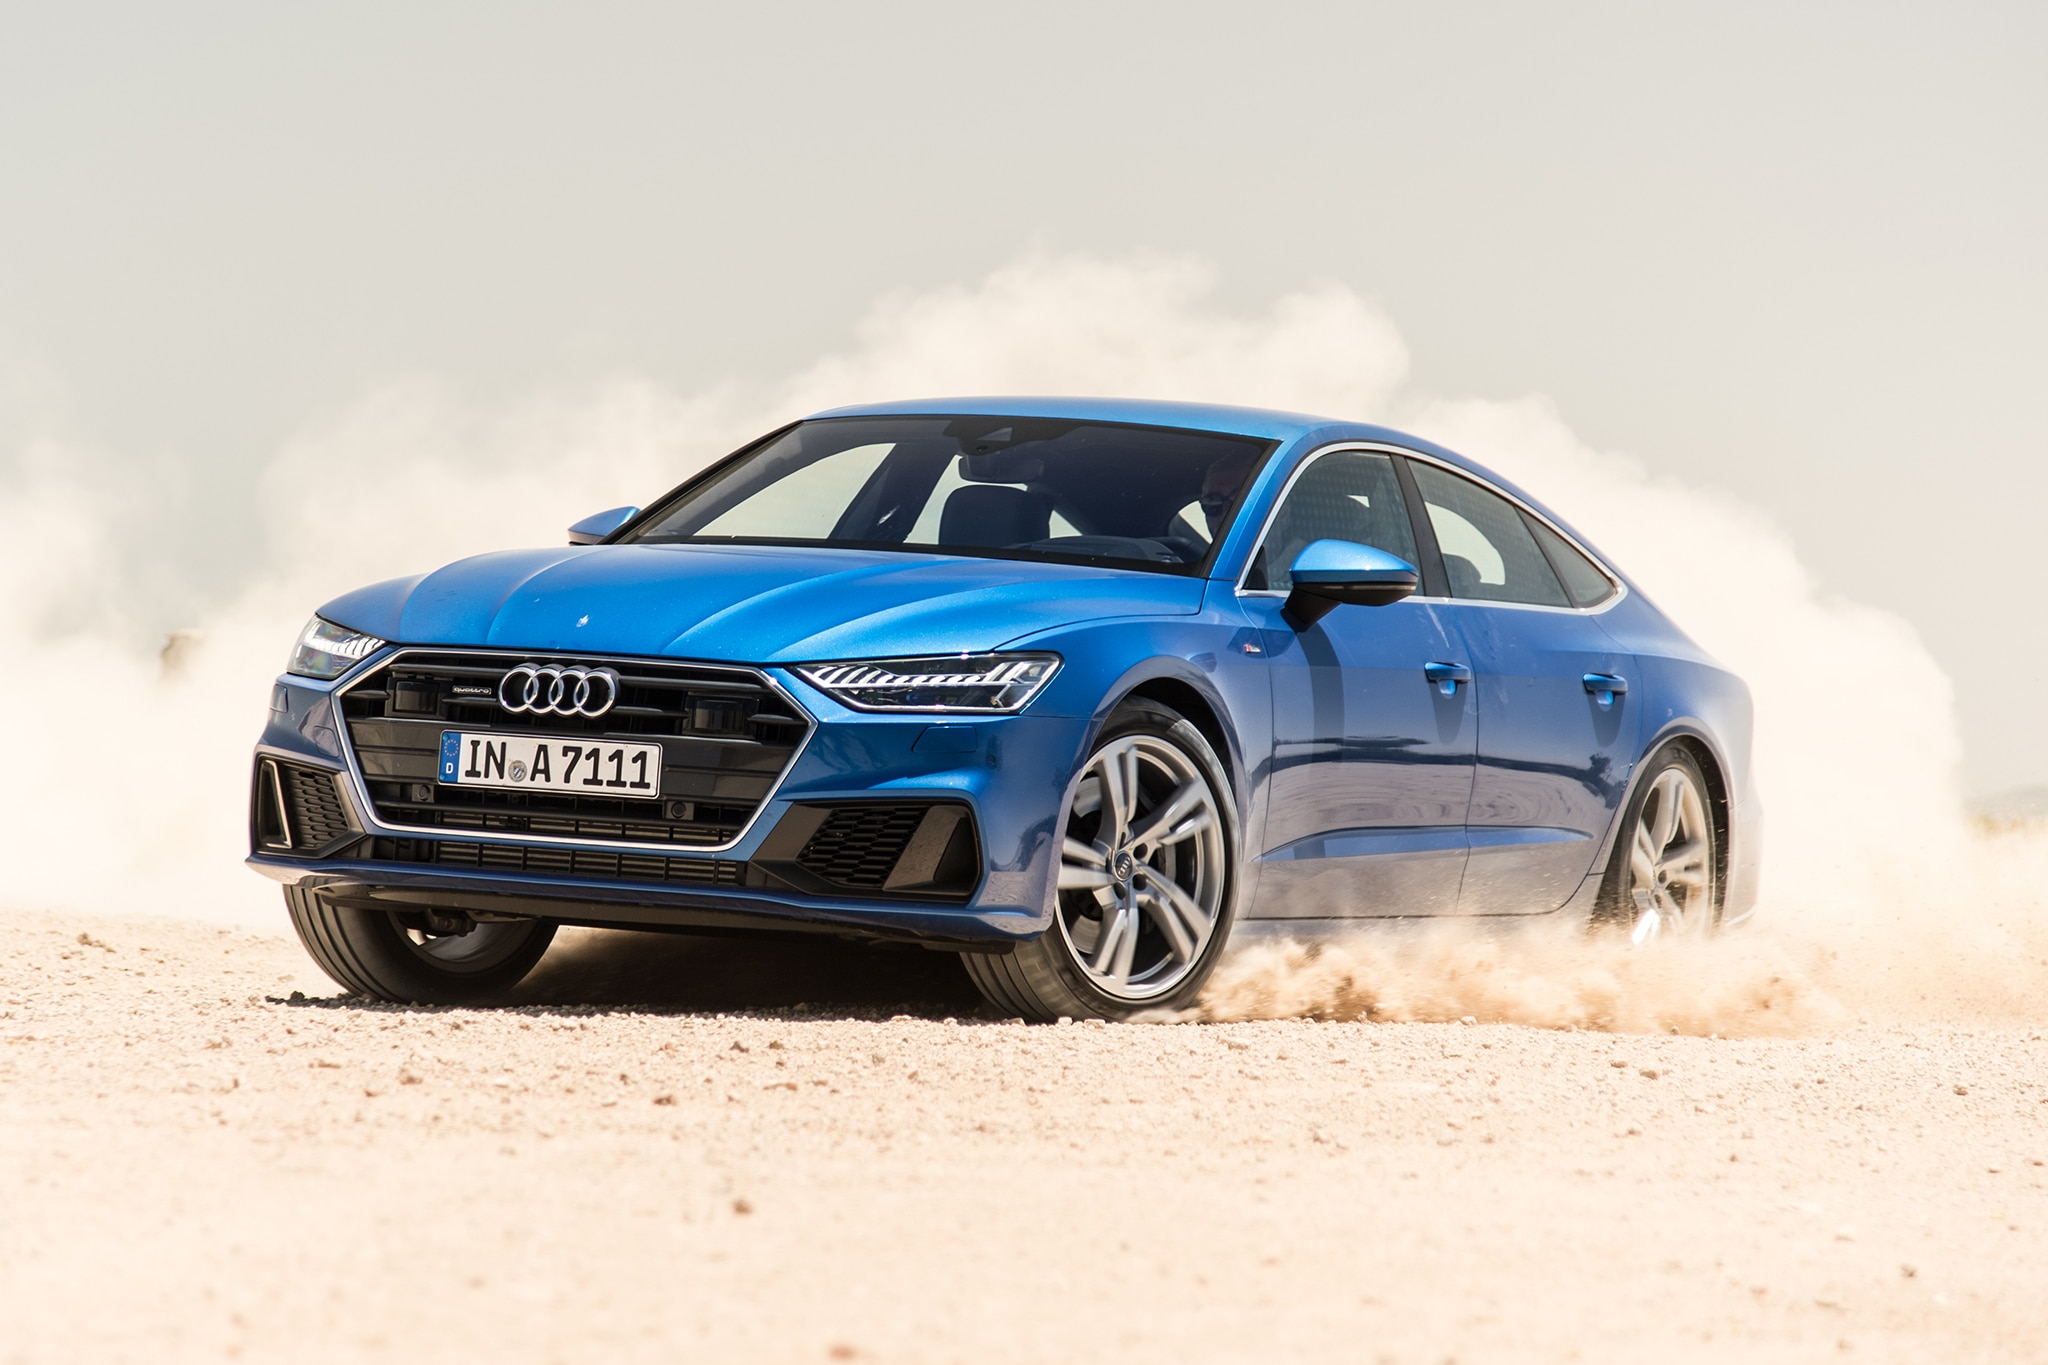 The 2019 Audi A7 Sportback Goes to Lüderitz | Automobile ...